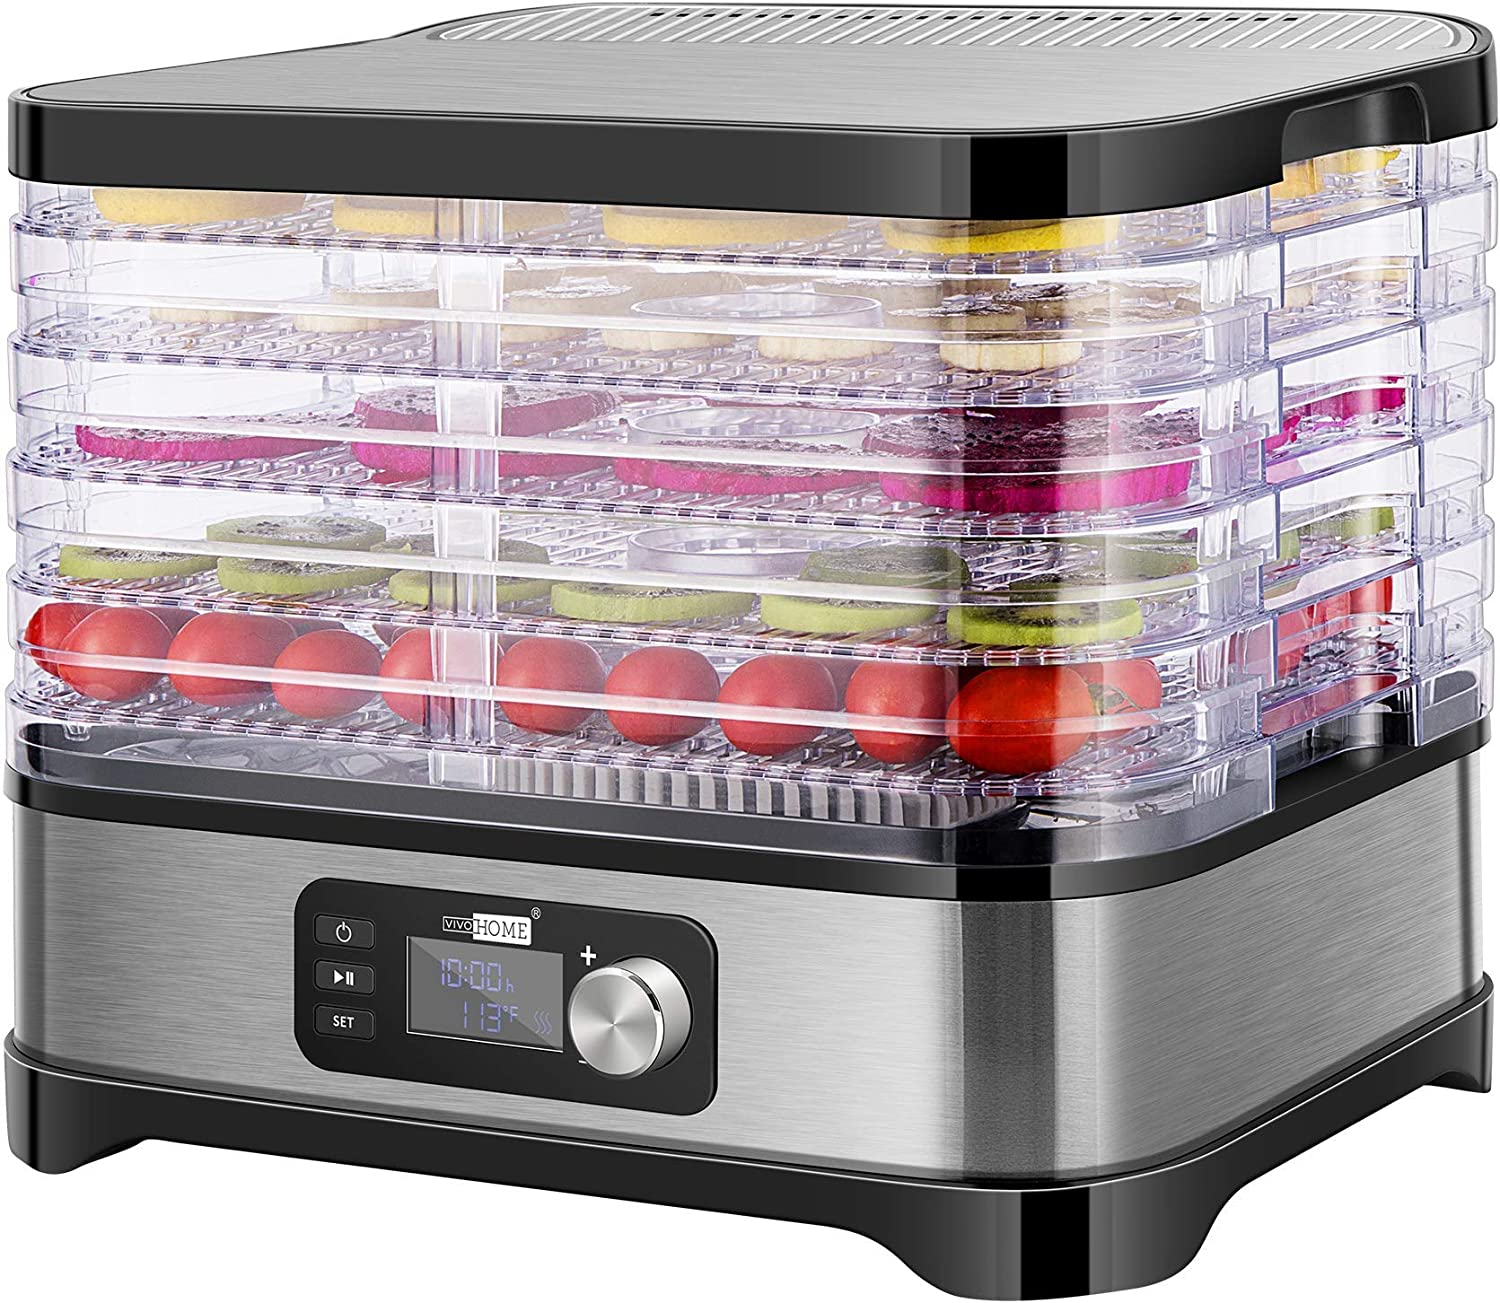 VIVOHOME Electric 400W 5 Trays Food Dehydrator Machine with Digital Timer and Temperature Control for Fruit Vegetable Meat Beef Jerky Maker BPA Free (Renewed)